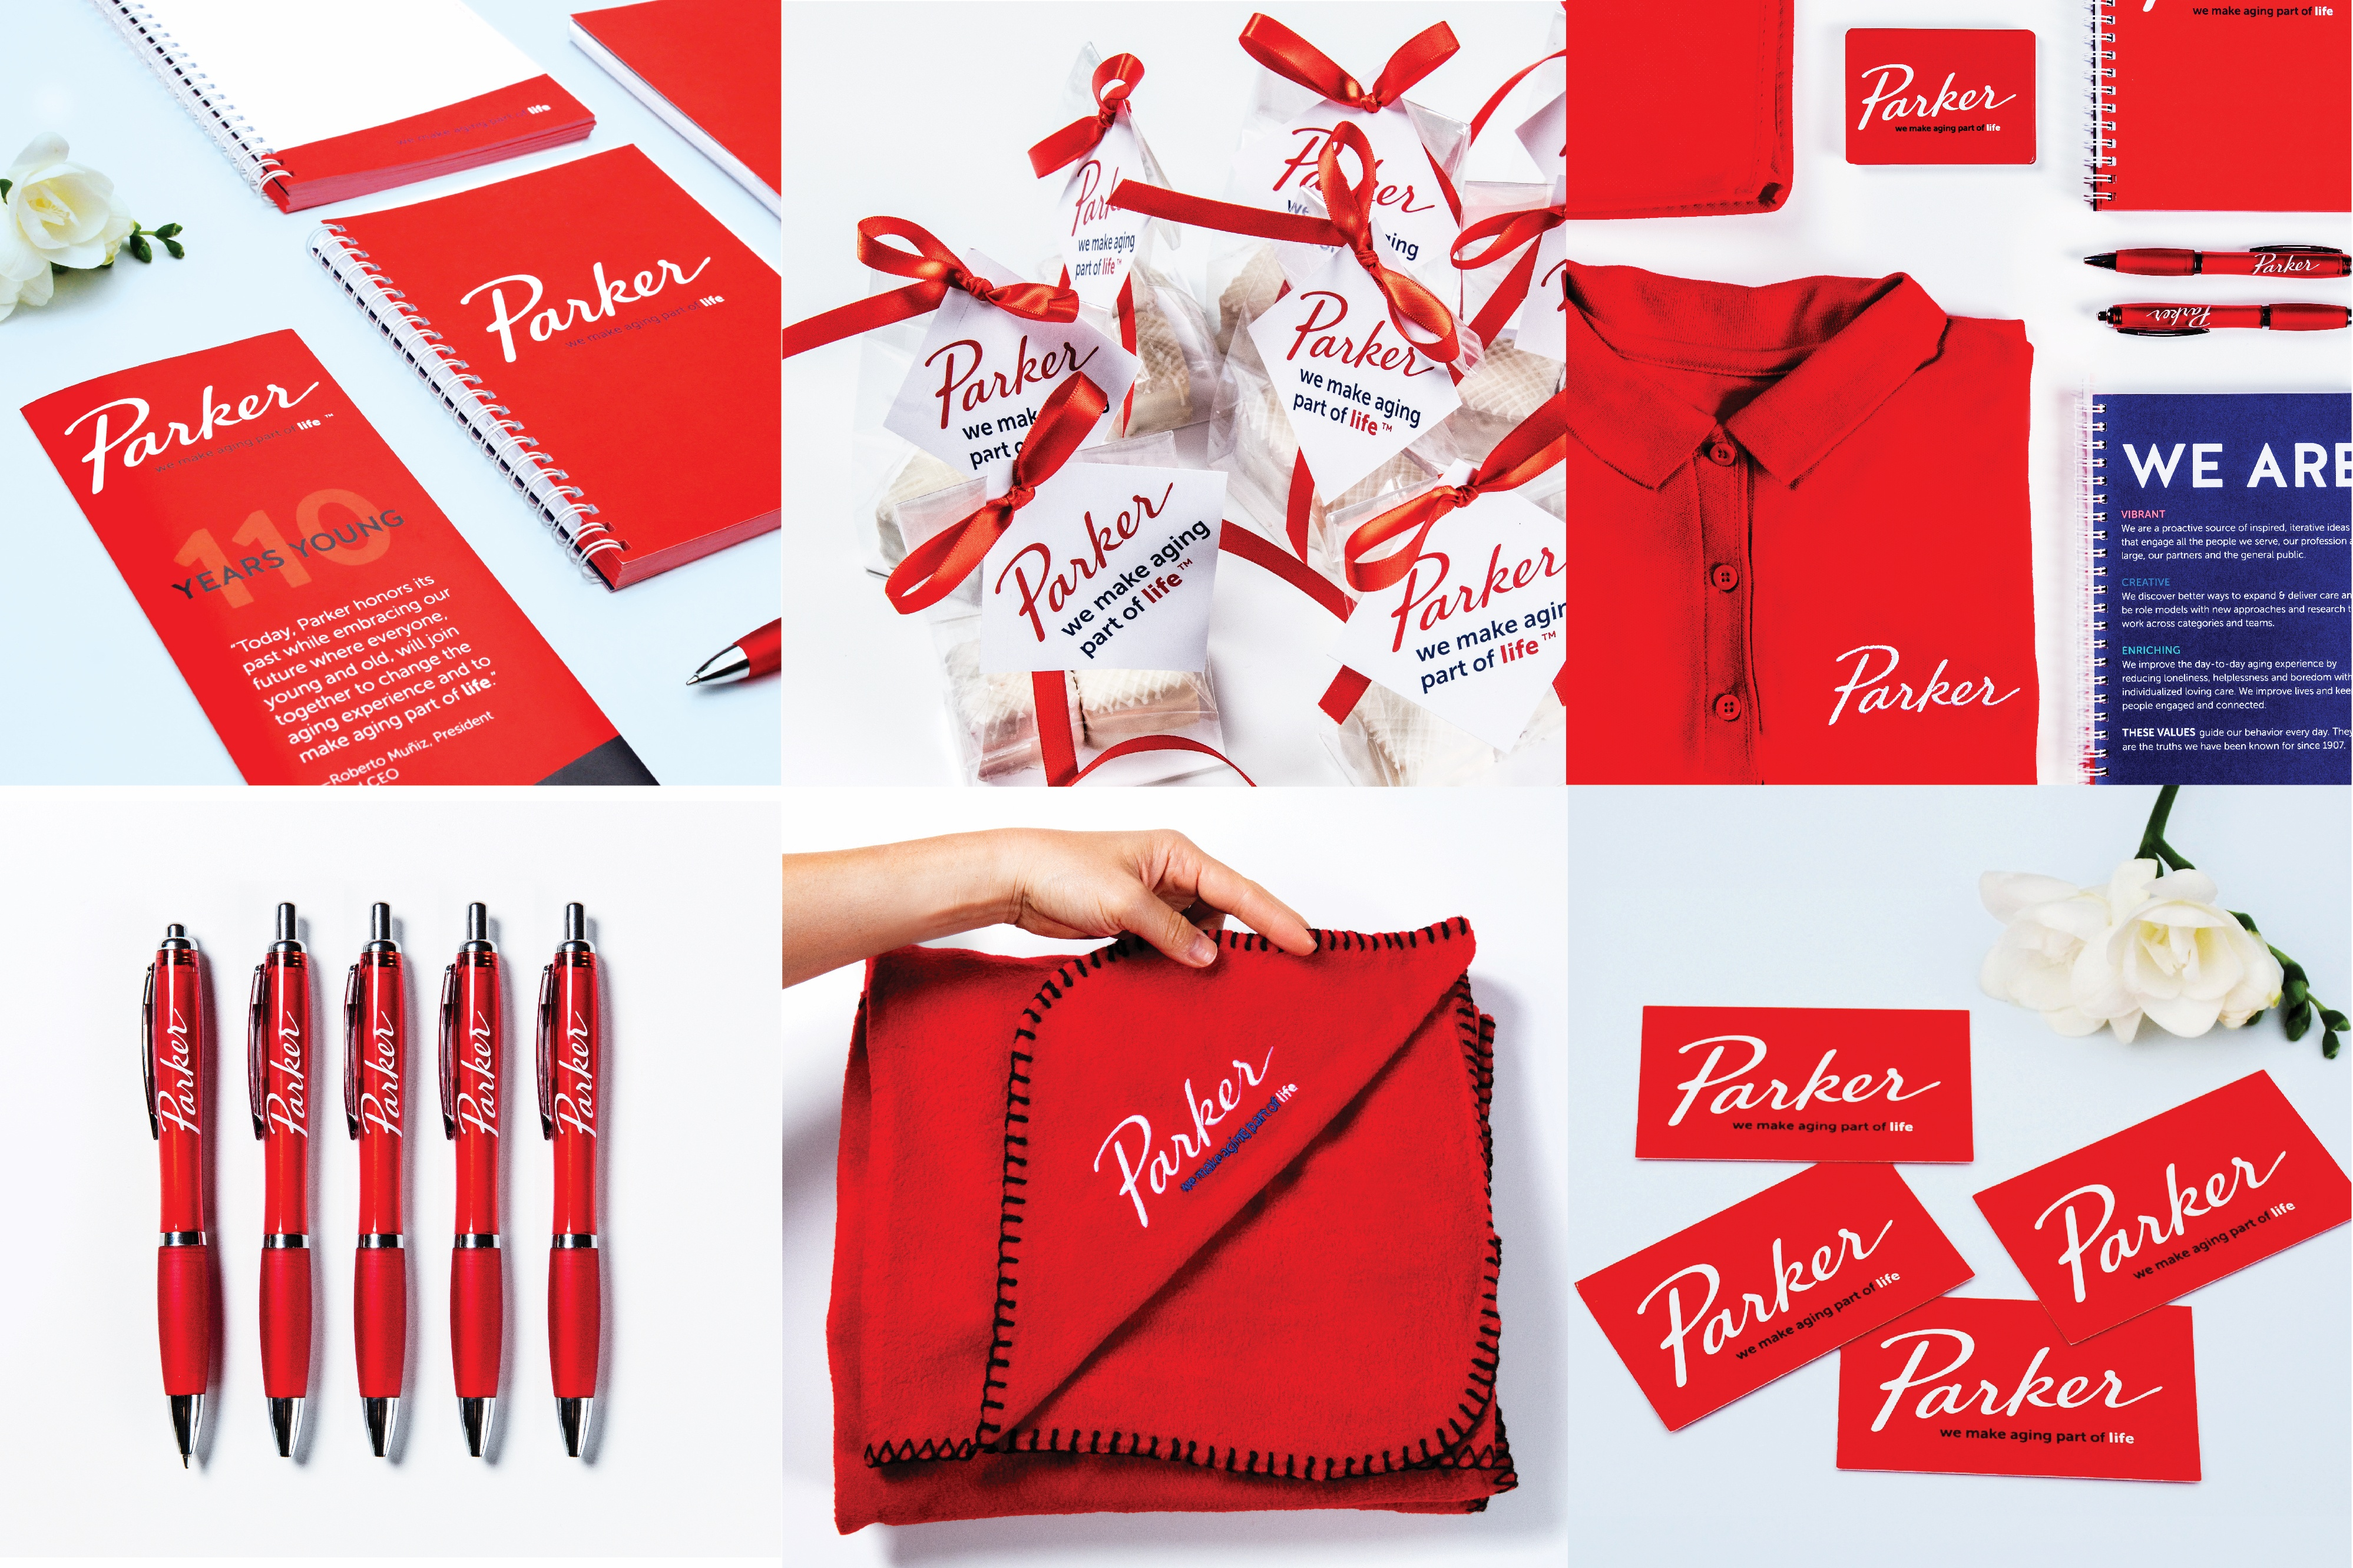 Gifts for Parker's brand launch attendees featured new logo and design